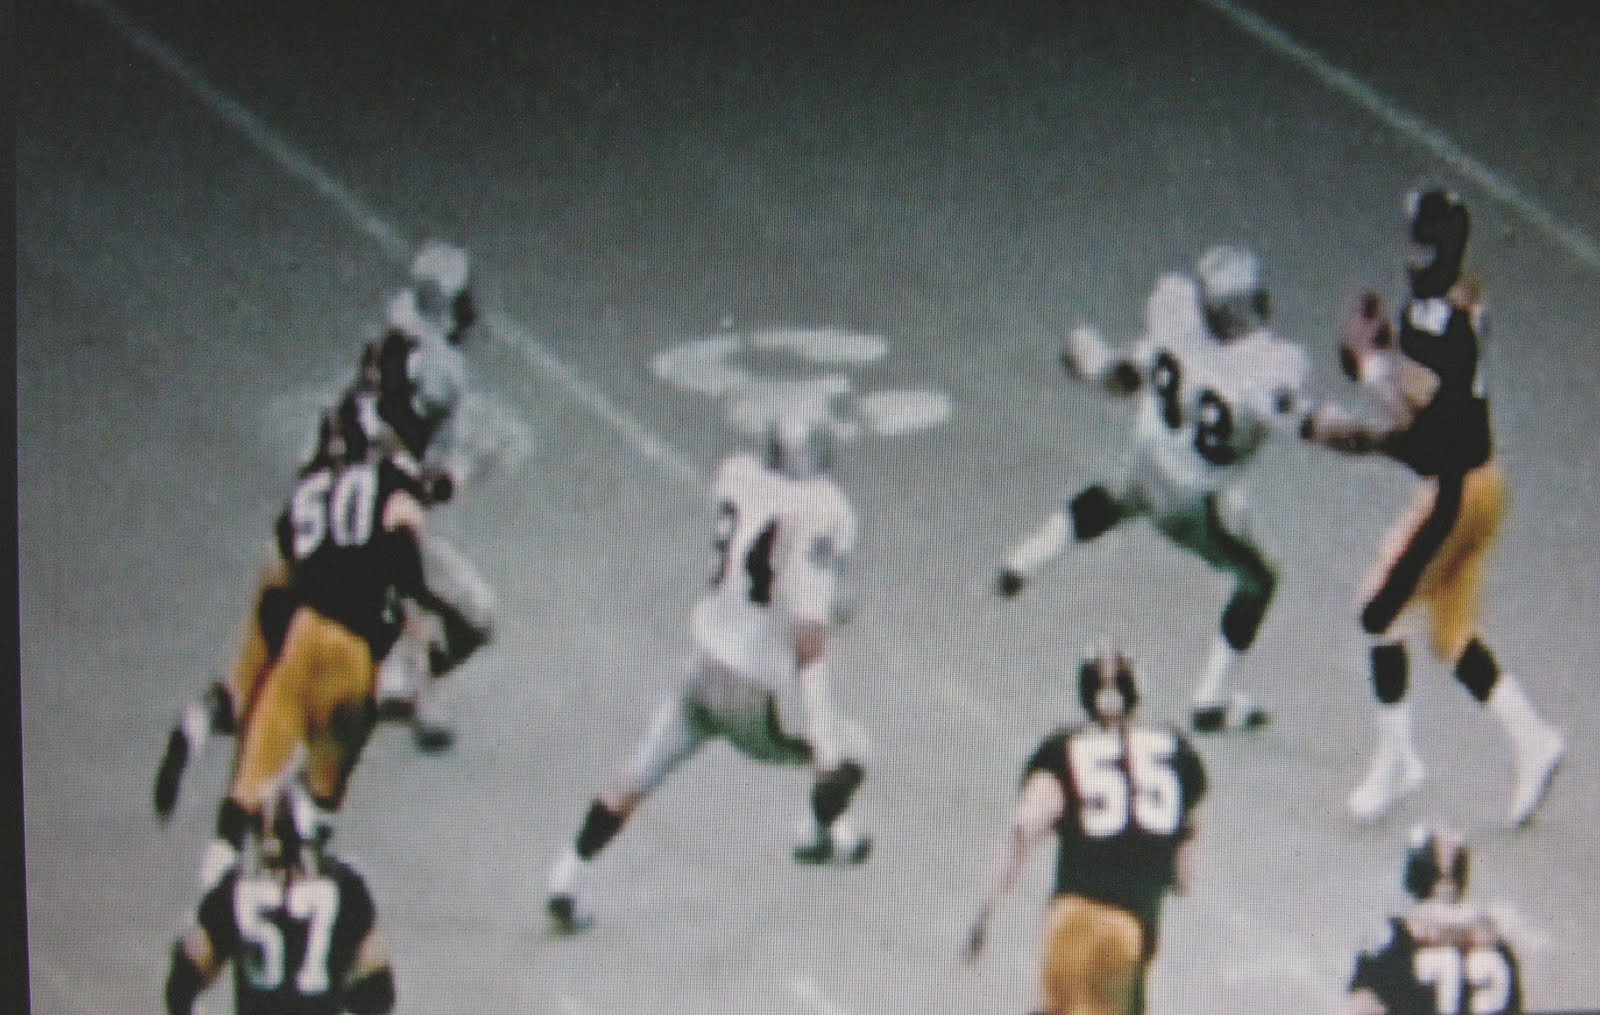 Author and artist immaculate reception proven